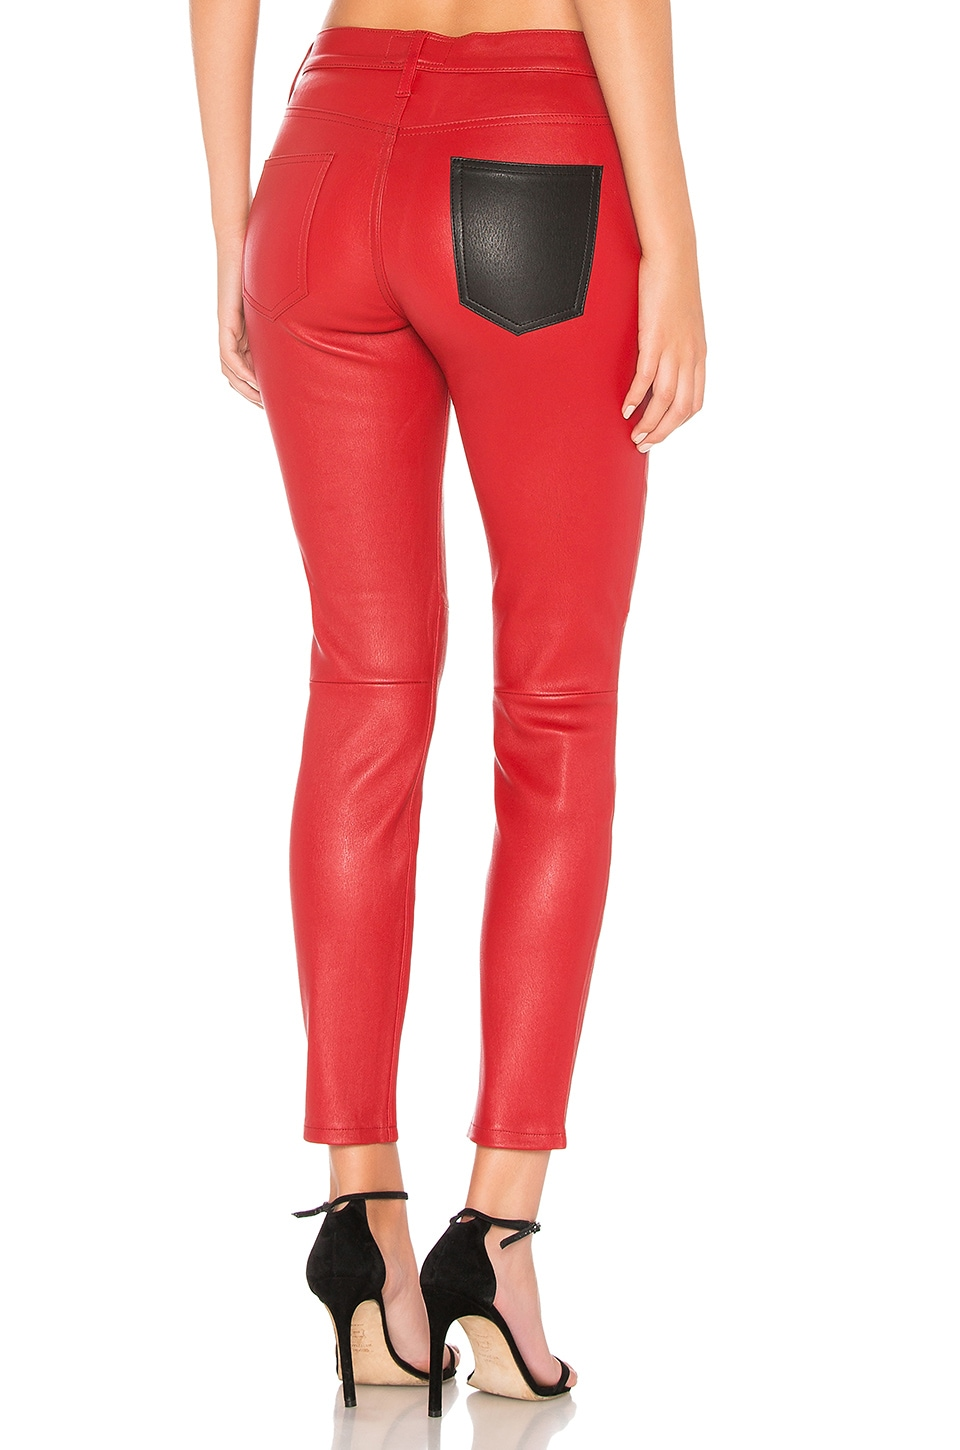 Current/Elliott The Stiletto Leather Skinny Jeans In Haute Red from CURRENT/ELLIOTT